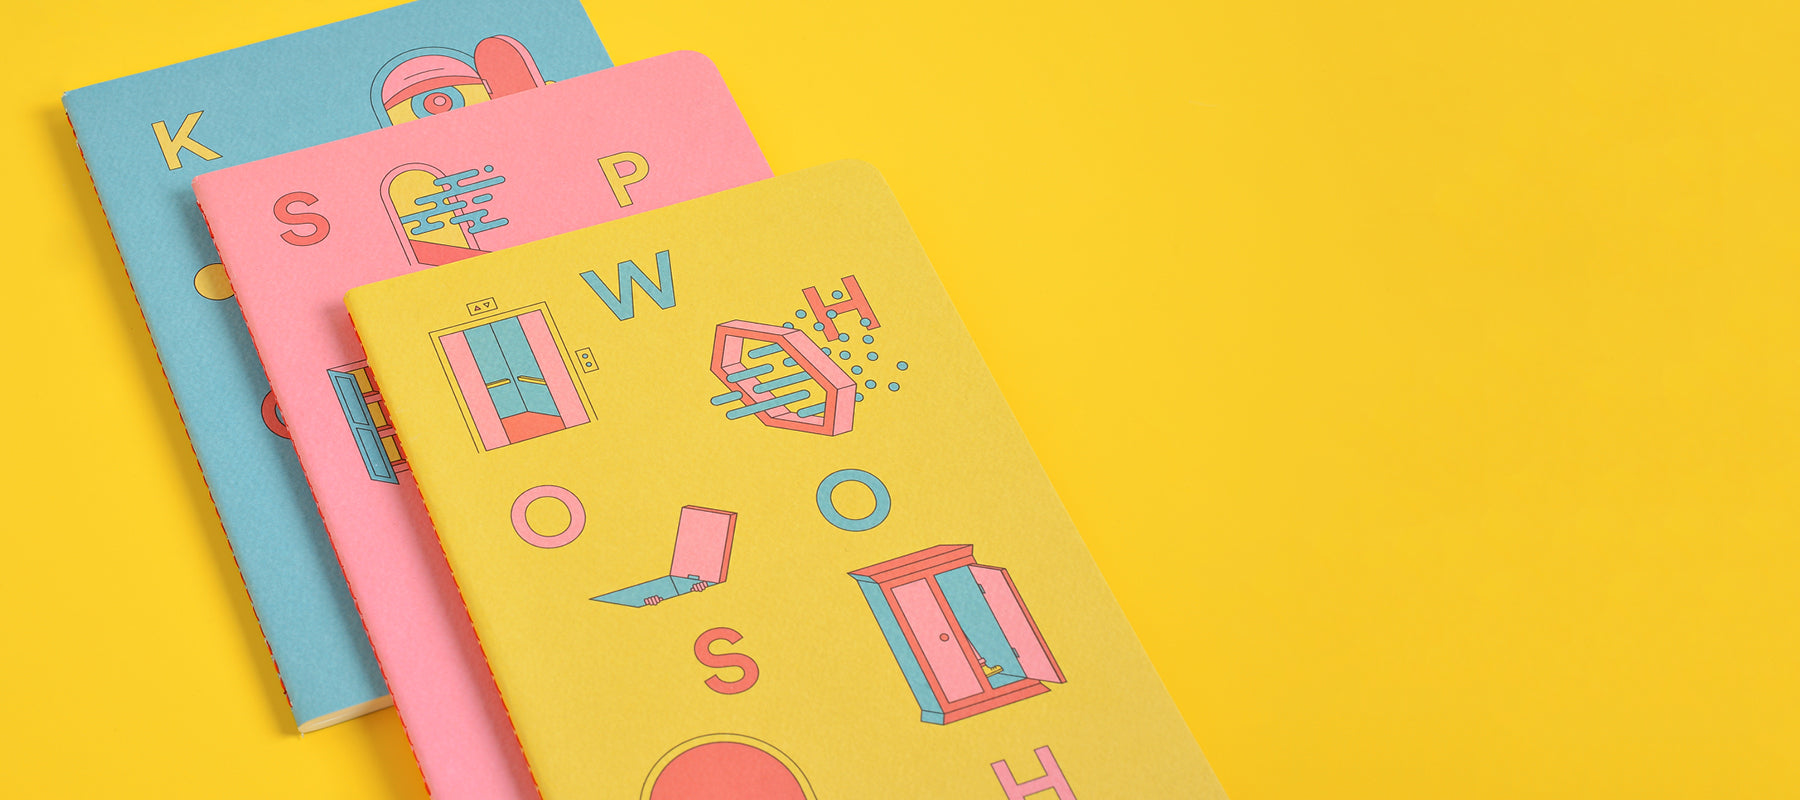 Portals notebooks in blue, pink, and yellow